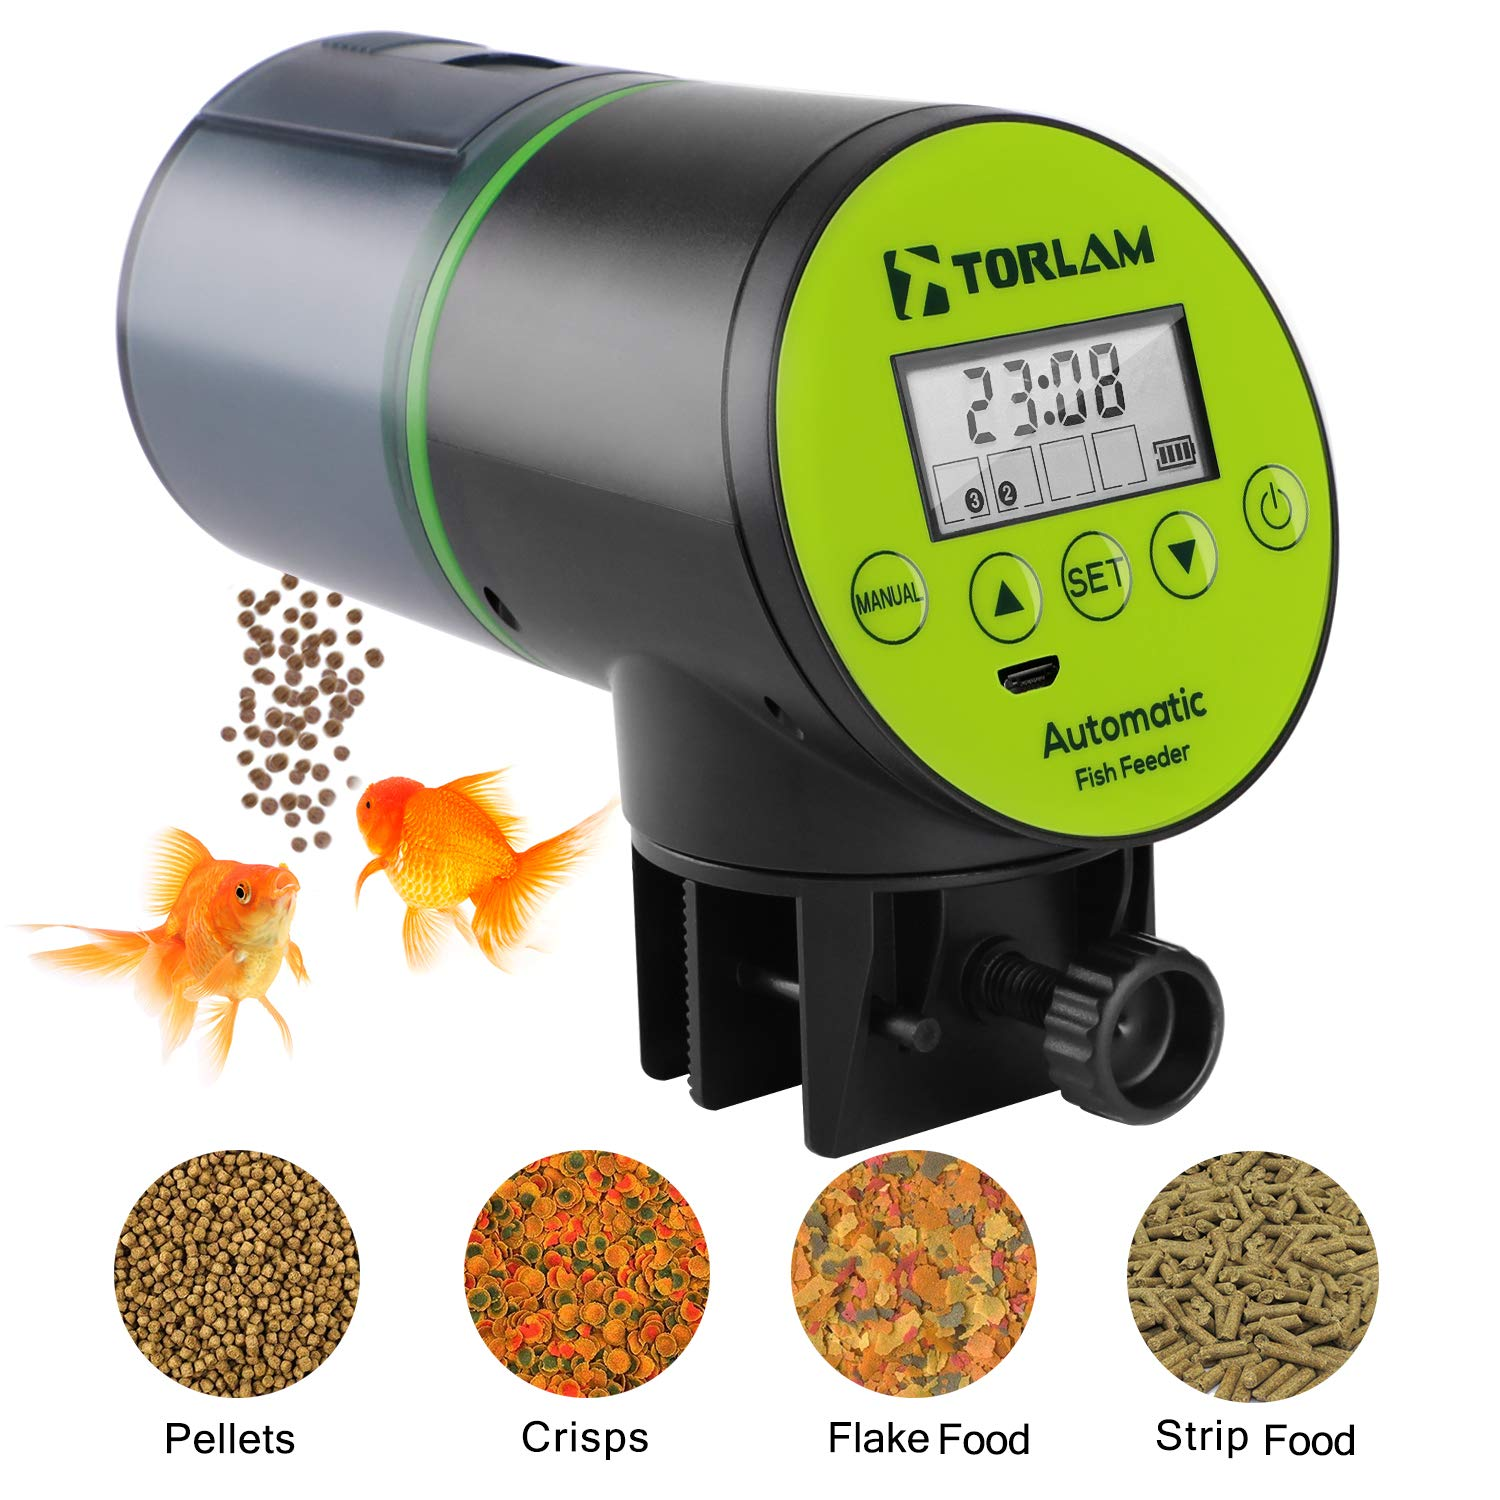 Torlam Automatic Fish Feeder, Moisture-Proof Electric Auto Fish Feeder,Aquarium Tank Timer Feeder Vacation &Weekend 2 Fish Food Dispenser